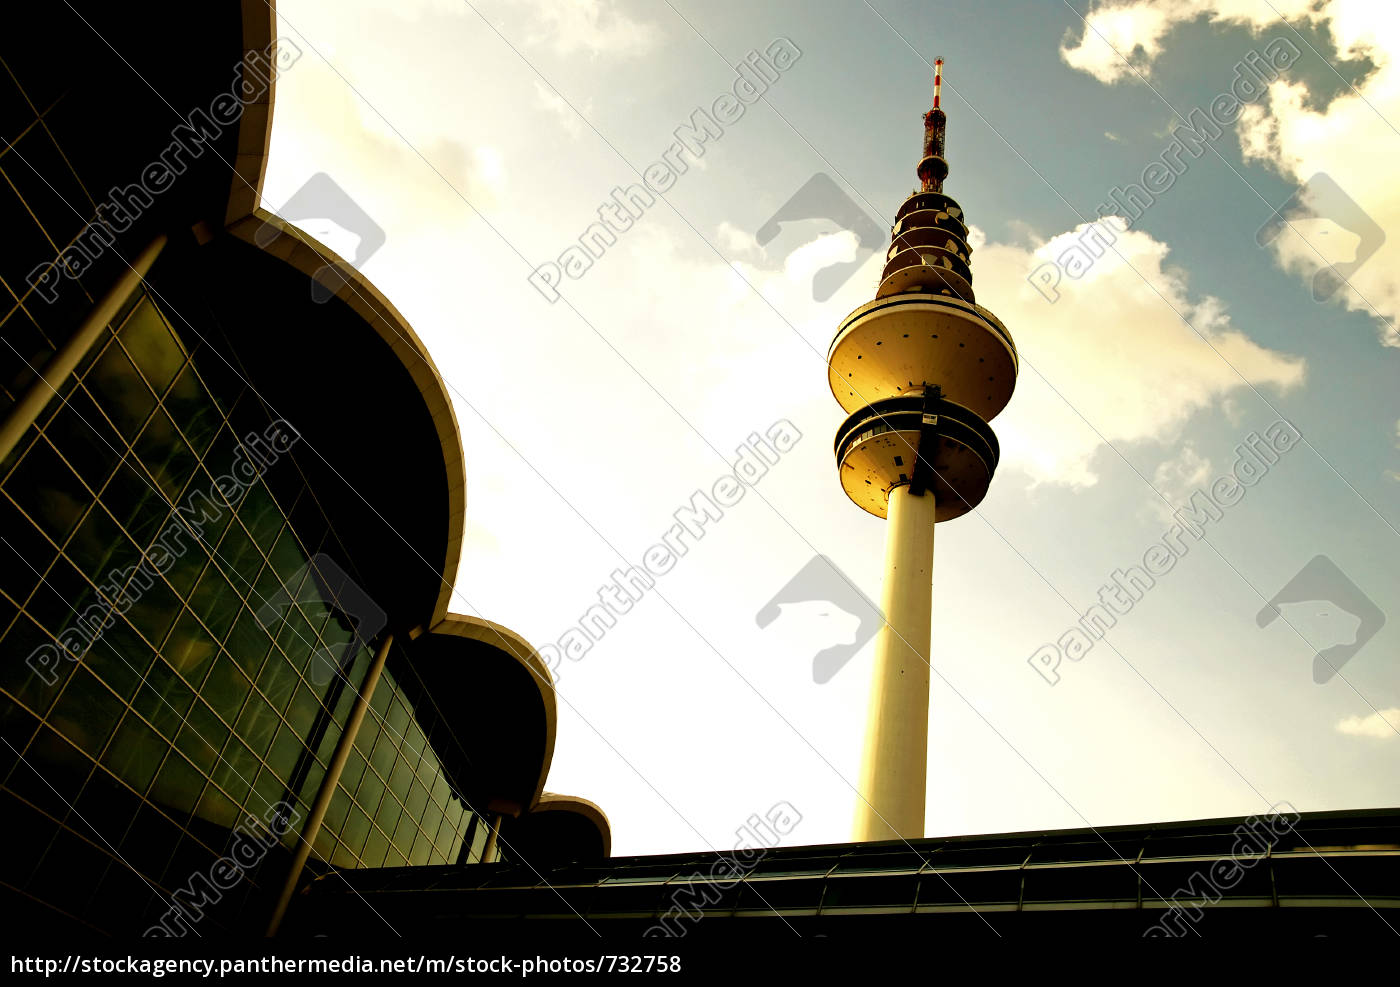 heinrich, heart, tower - 732758